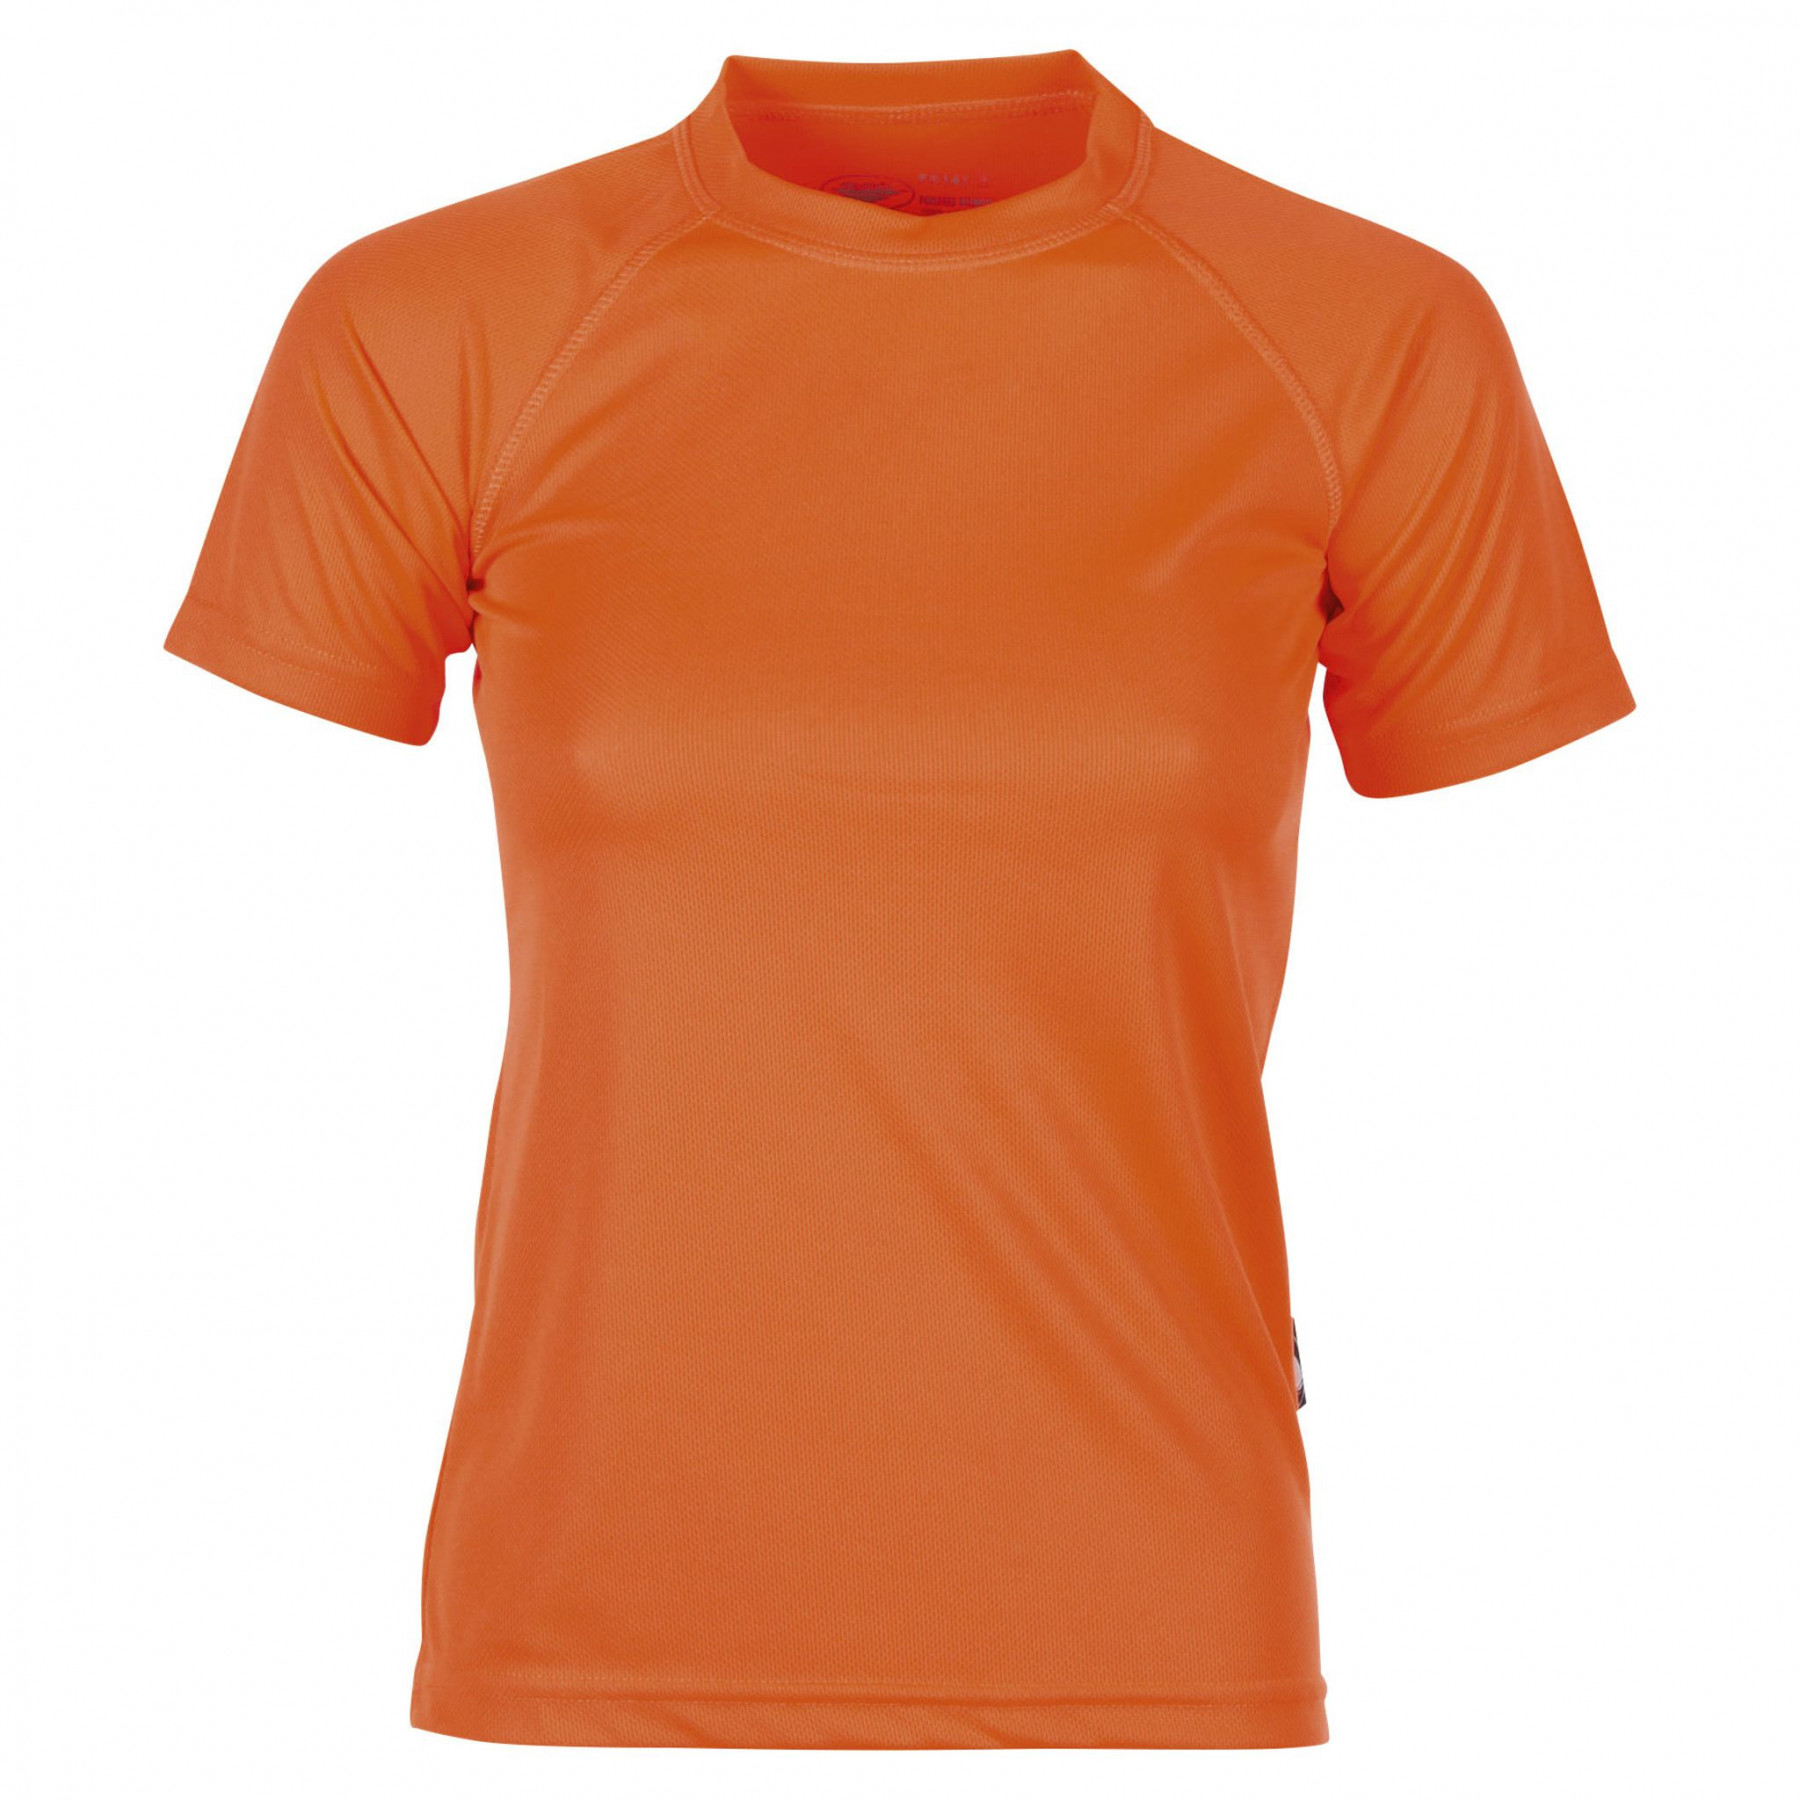 Tee-shirt respirant femme Pen Duick - Orange fluo